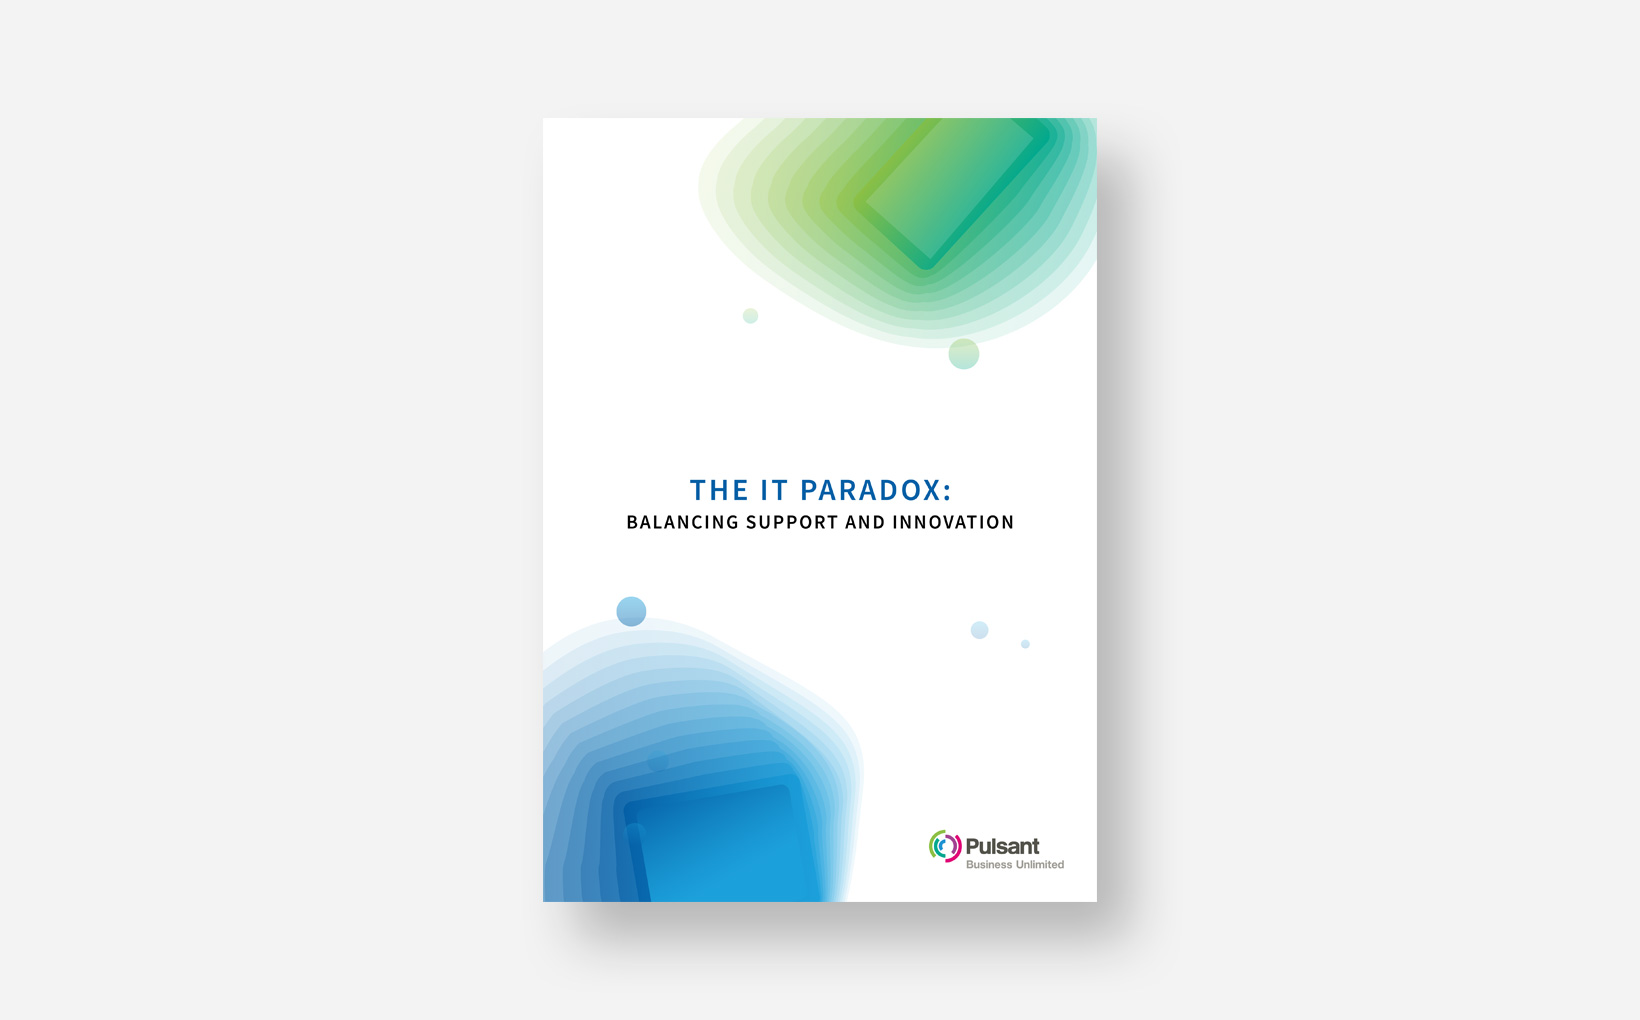 Four steps to resolving the IT Paradox